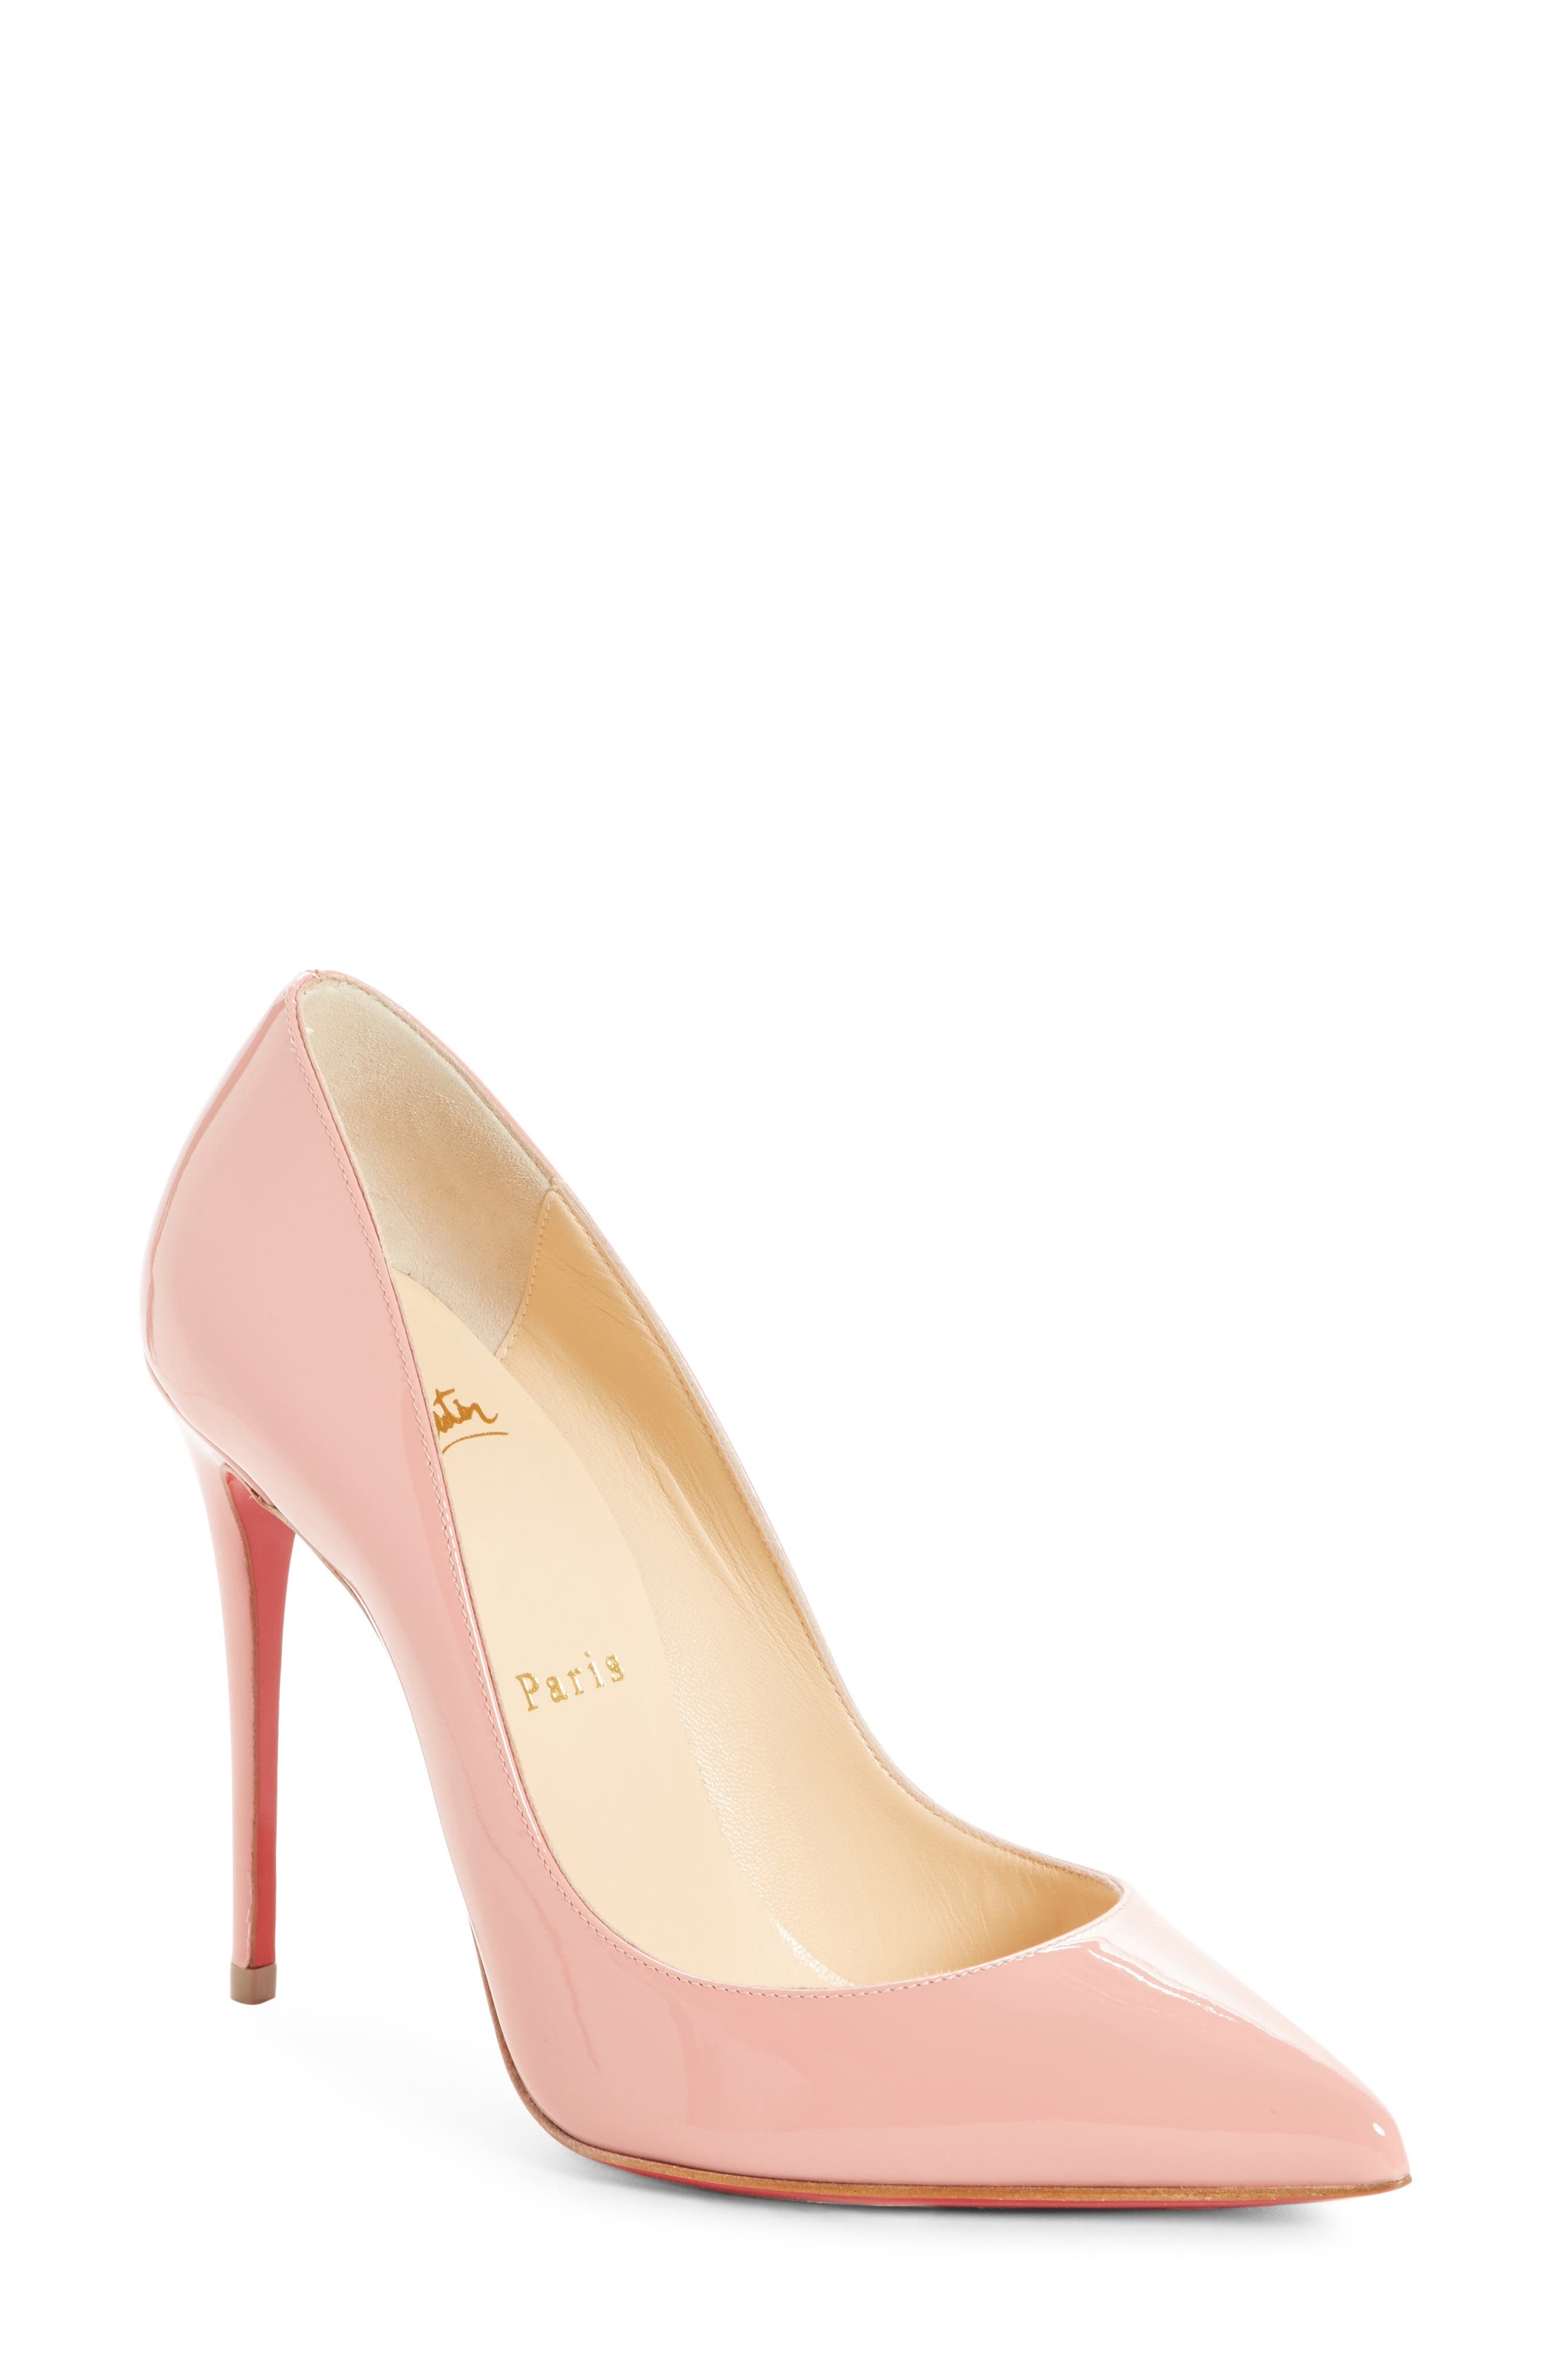 'Pigalle Follies' Pointy Toe Pump,                             Main thumbnail 1, color,                             Marshmallow Pink